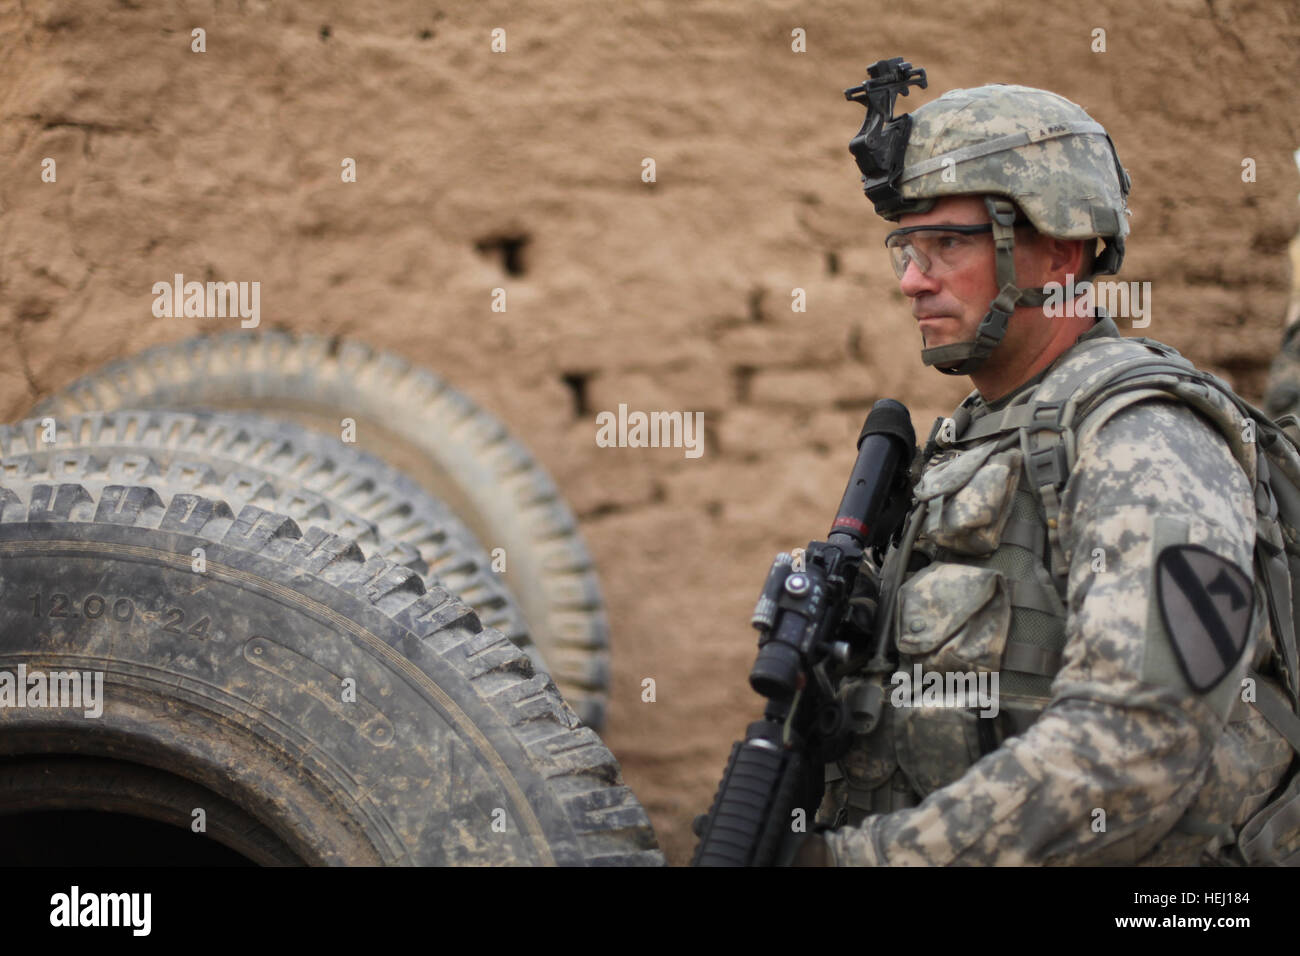 U.S. Army Spc. Timothy McDaniel, from Lansing, Mich., assigned to the 1st Battalion, 8th Cavalry, 2nd Brigade Combat - Stock Image